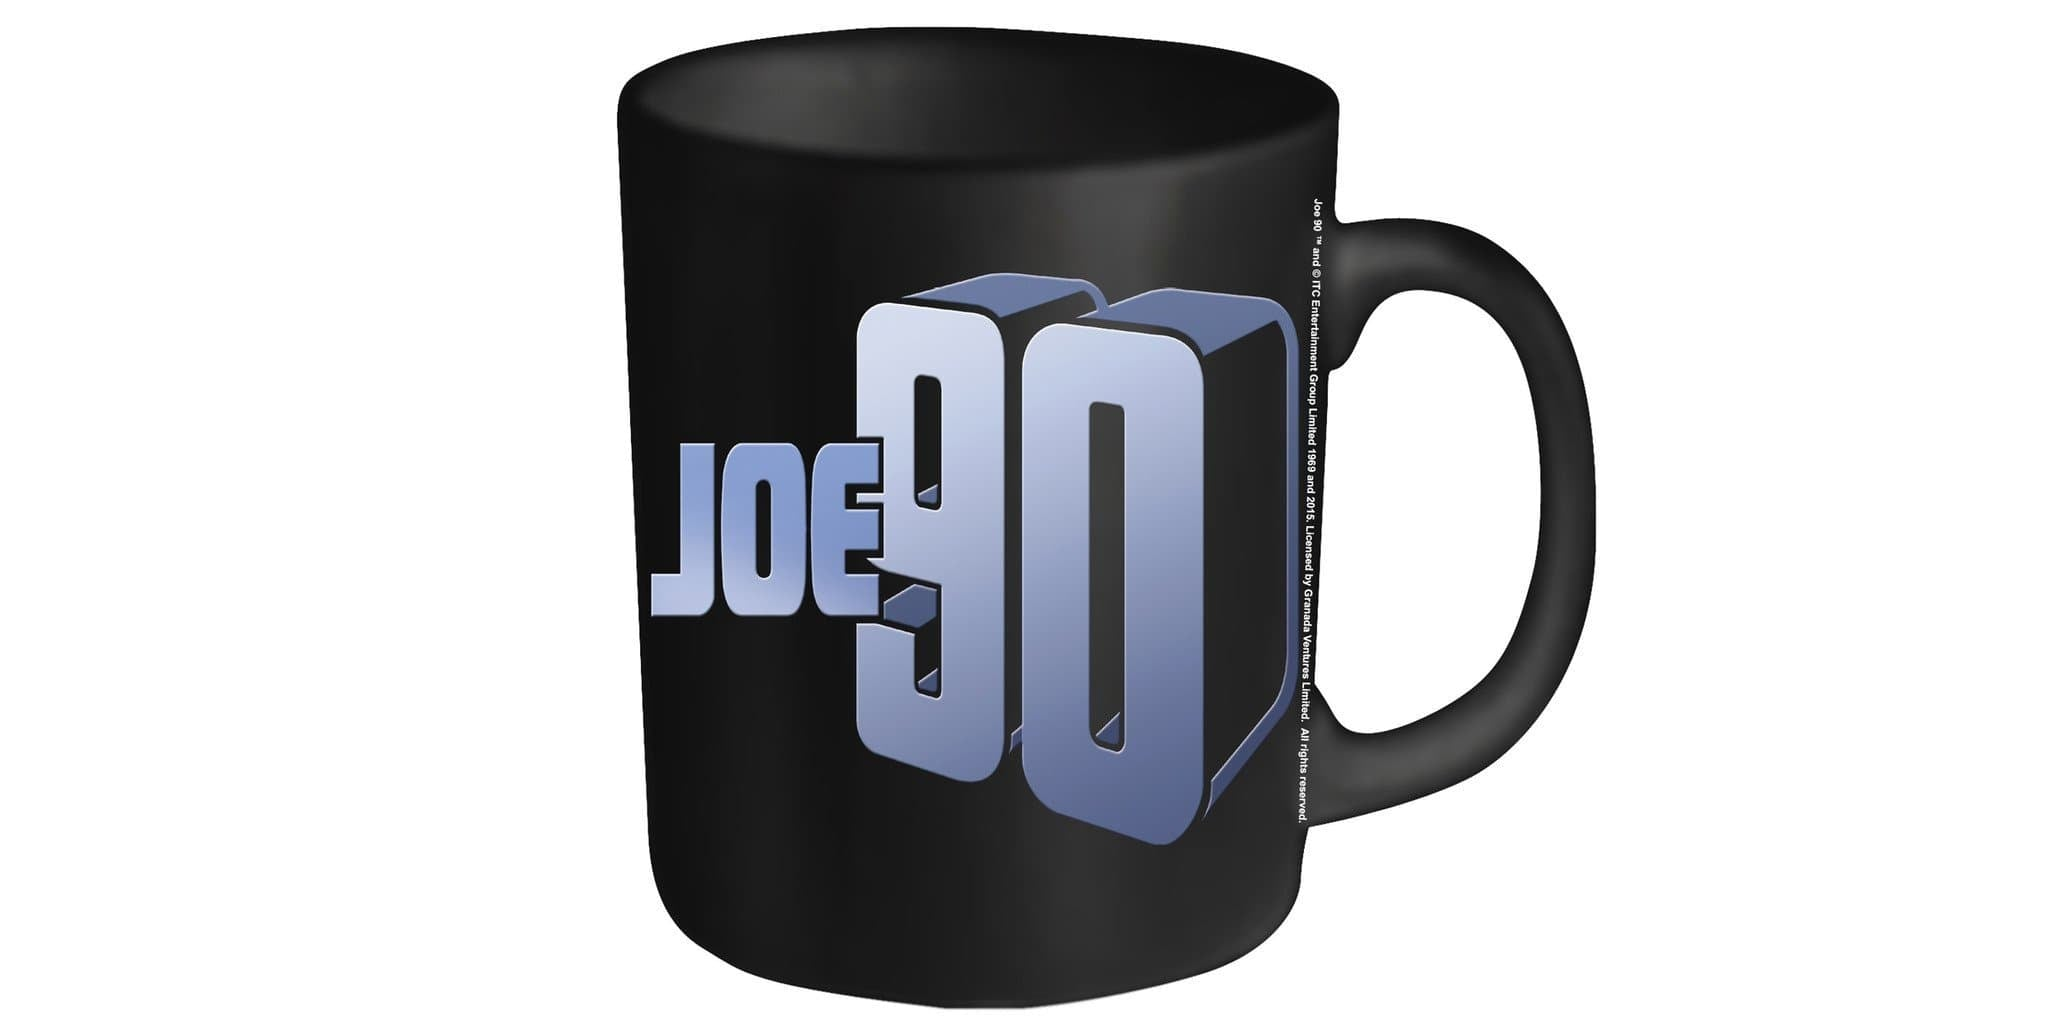 Joe 90 Mug - Joe 90 Logo - The Gerry Anderson Store